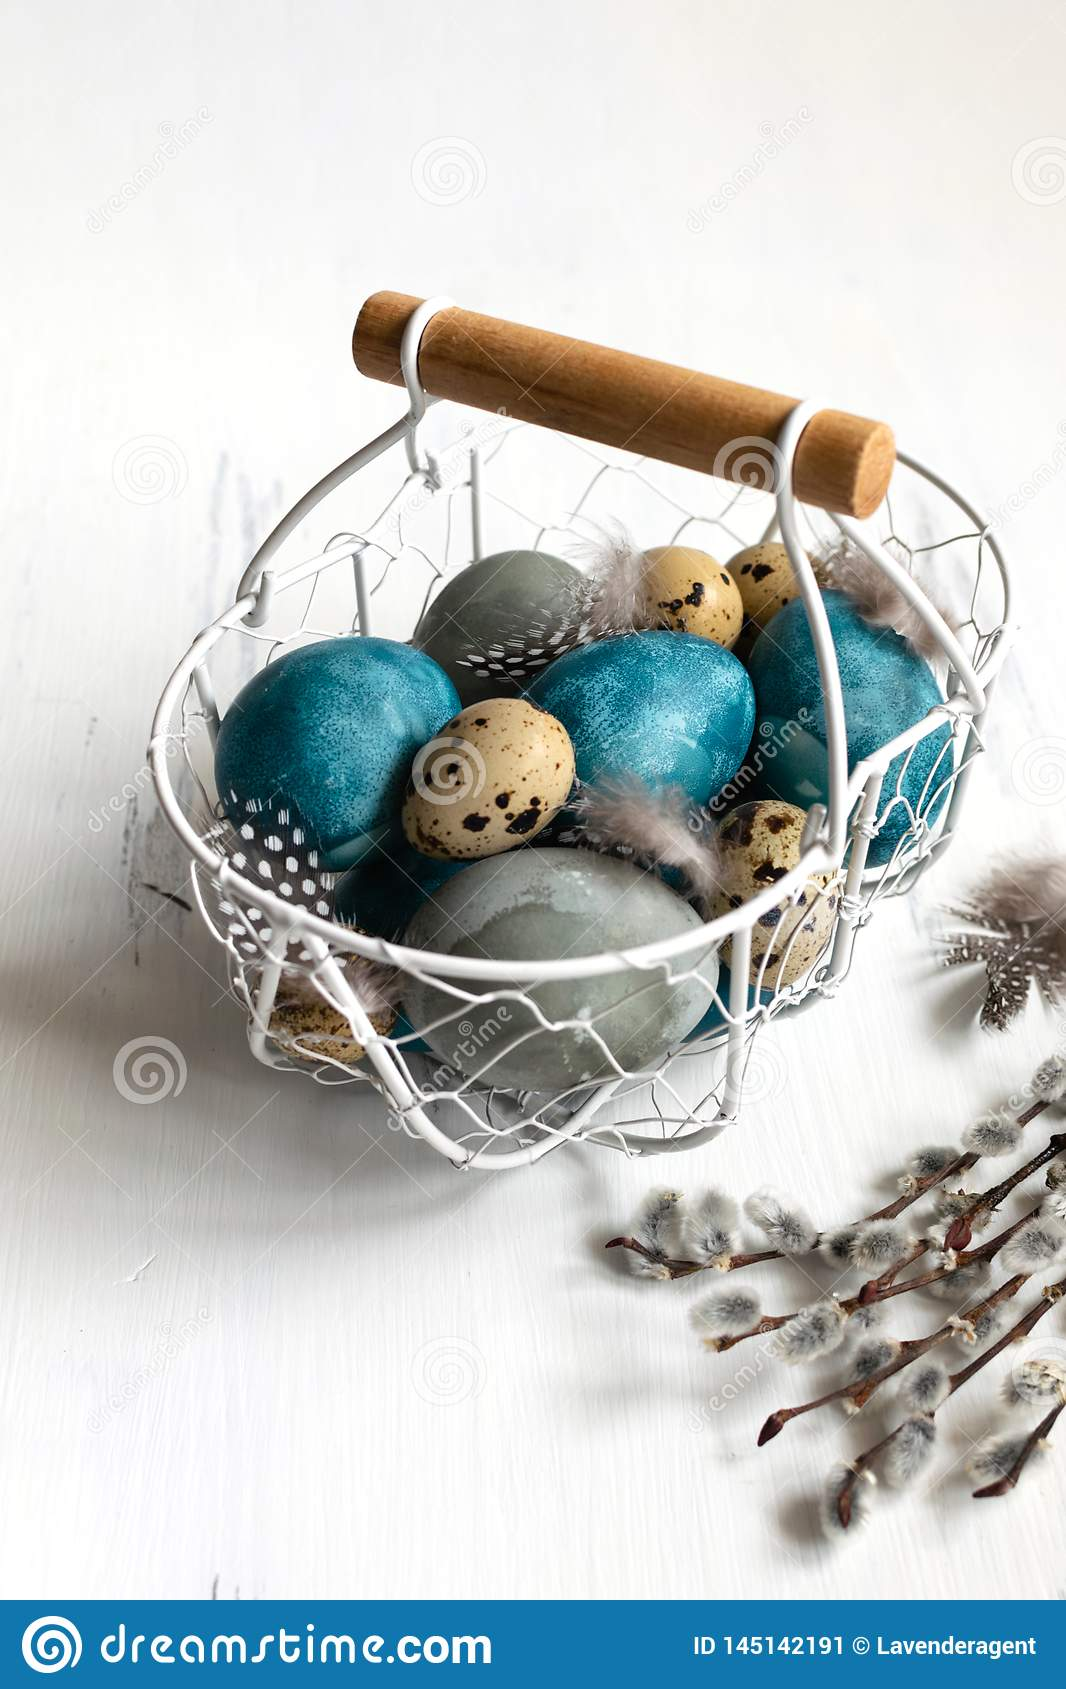 Spring easter concept, - naturally dyed easter eggs, quail eggs, feathers, white wooden background, copy space